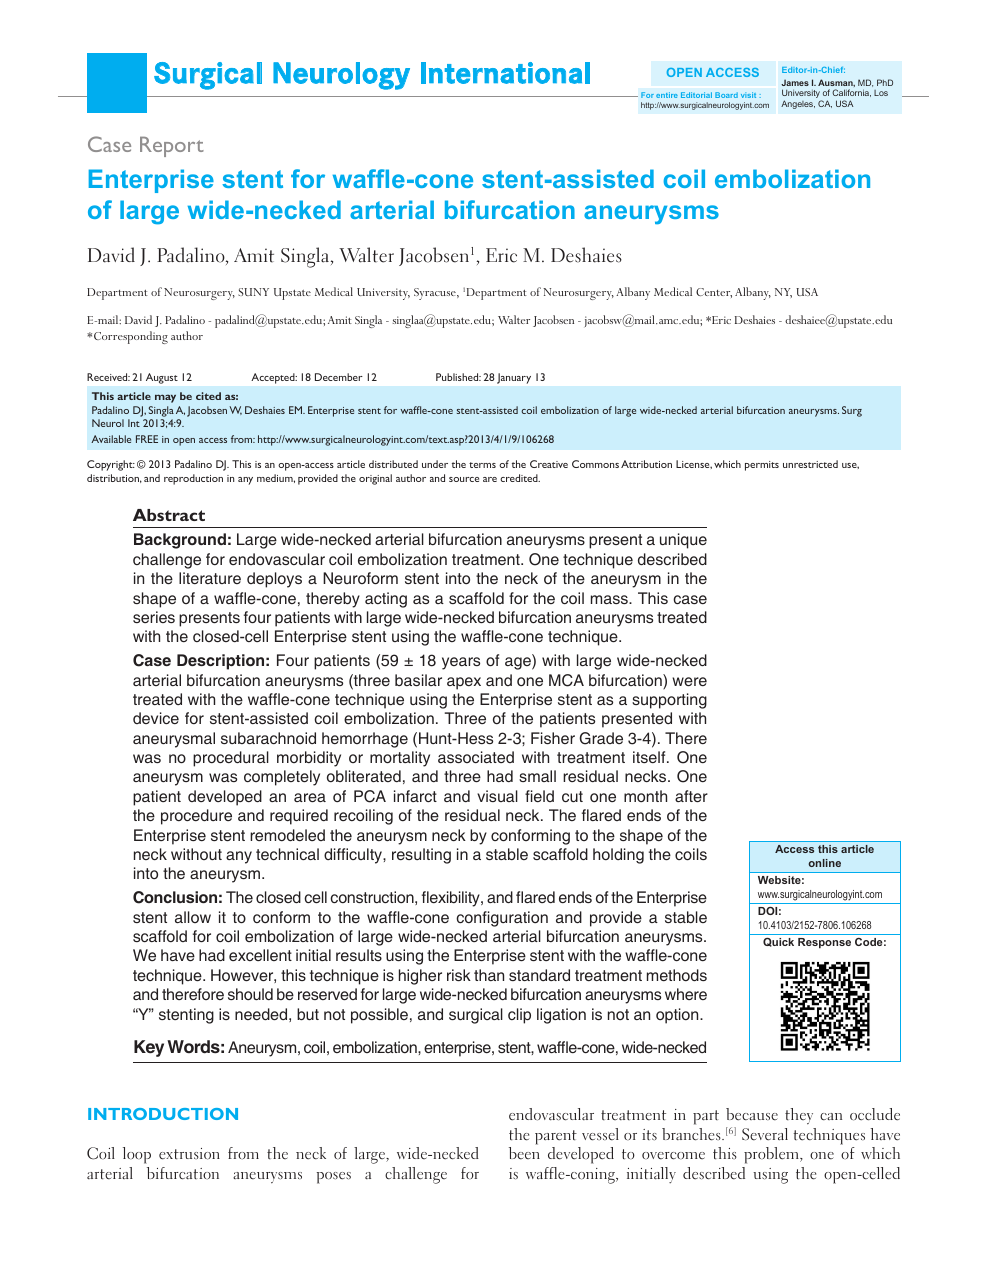 Enterprise stent for waffle-cone stent-assisted coil embolization of